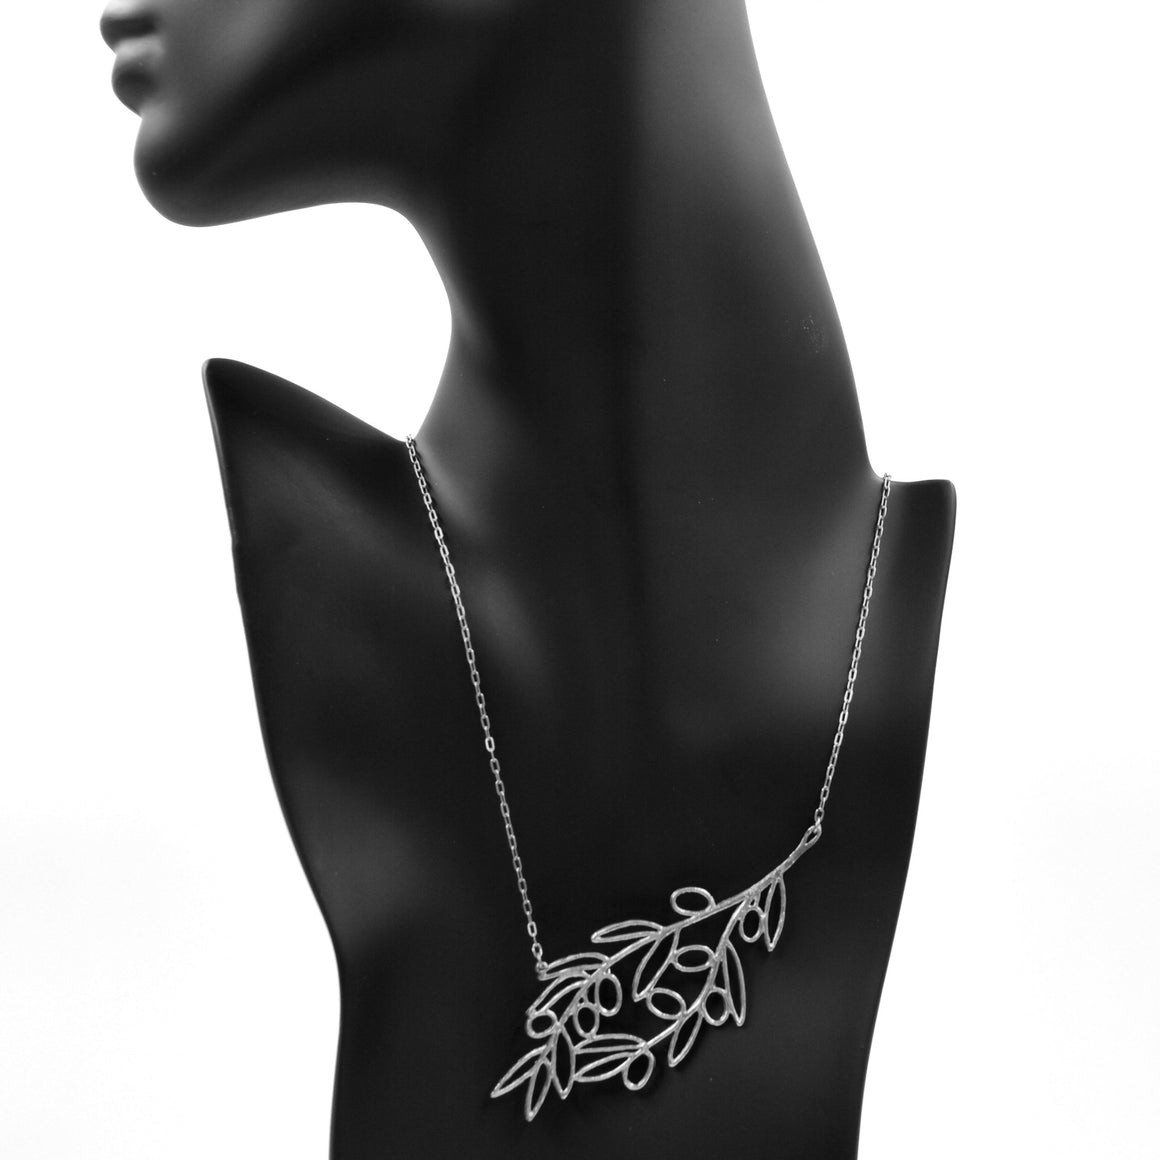 Olive Branch Slanted Collar Necklace - Platinum Silver